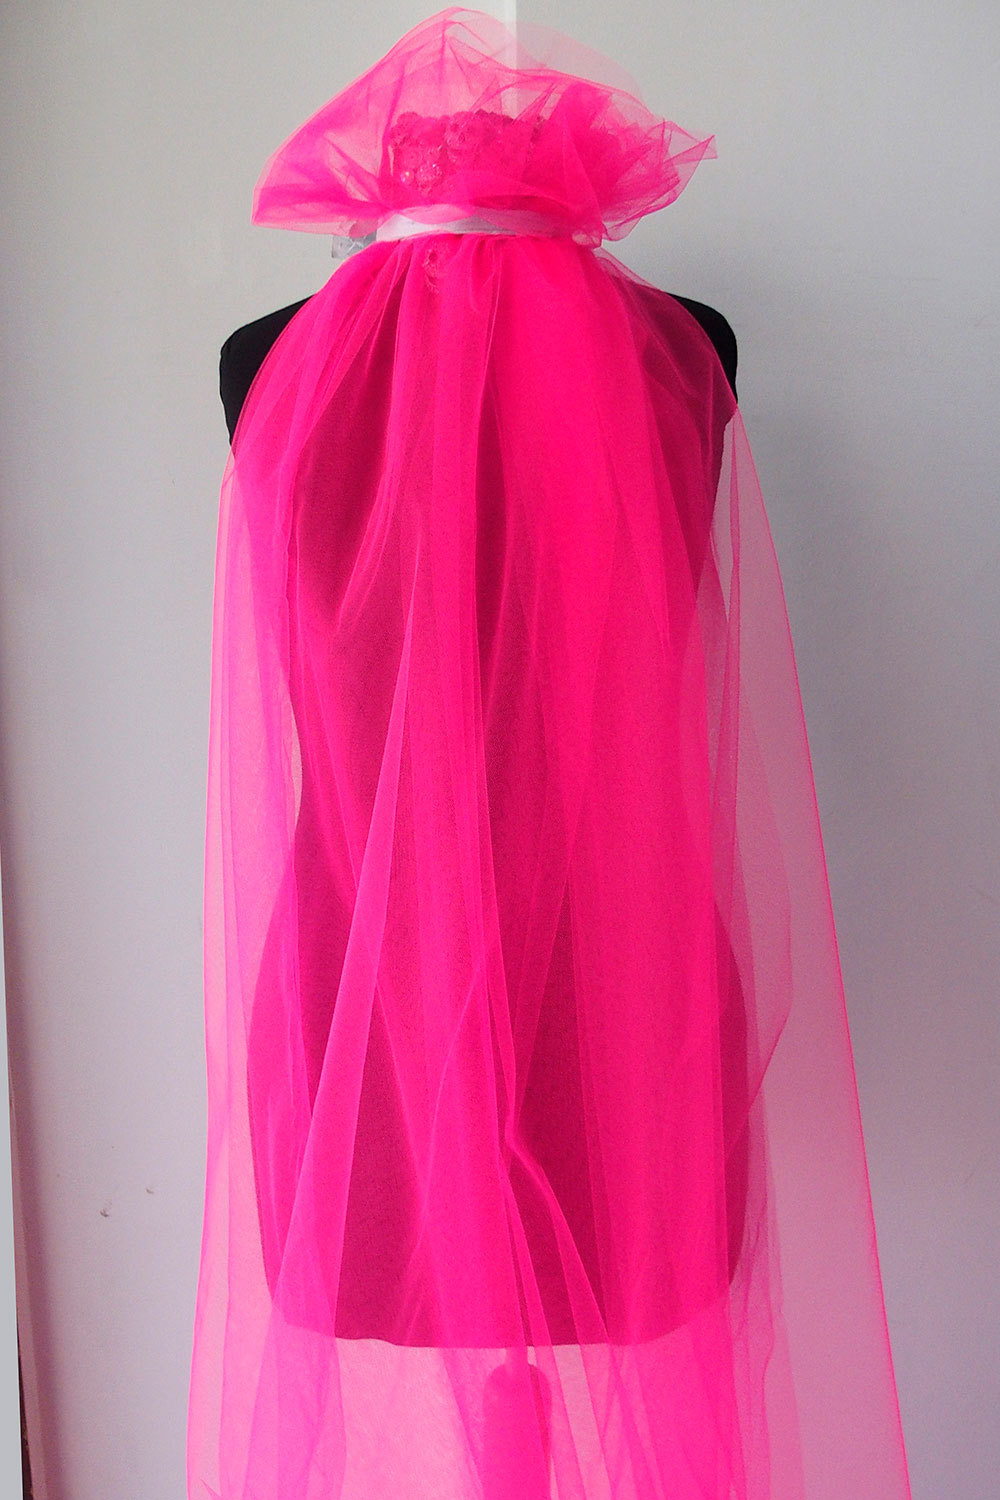 fluorescent pink tulle